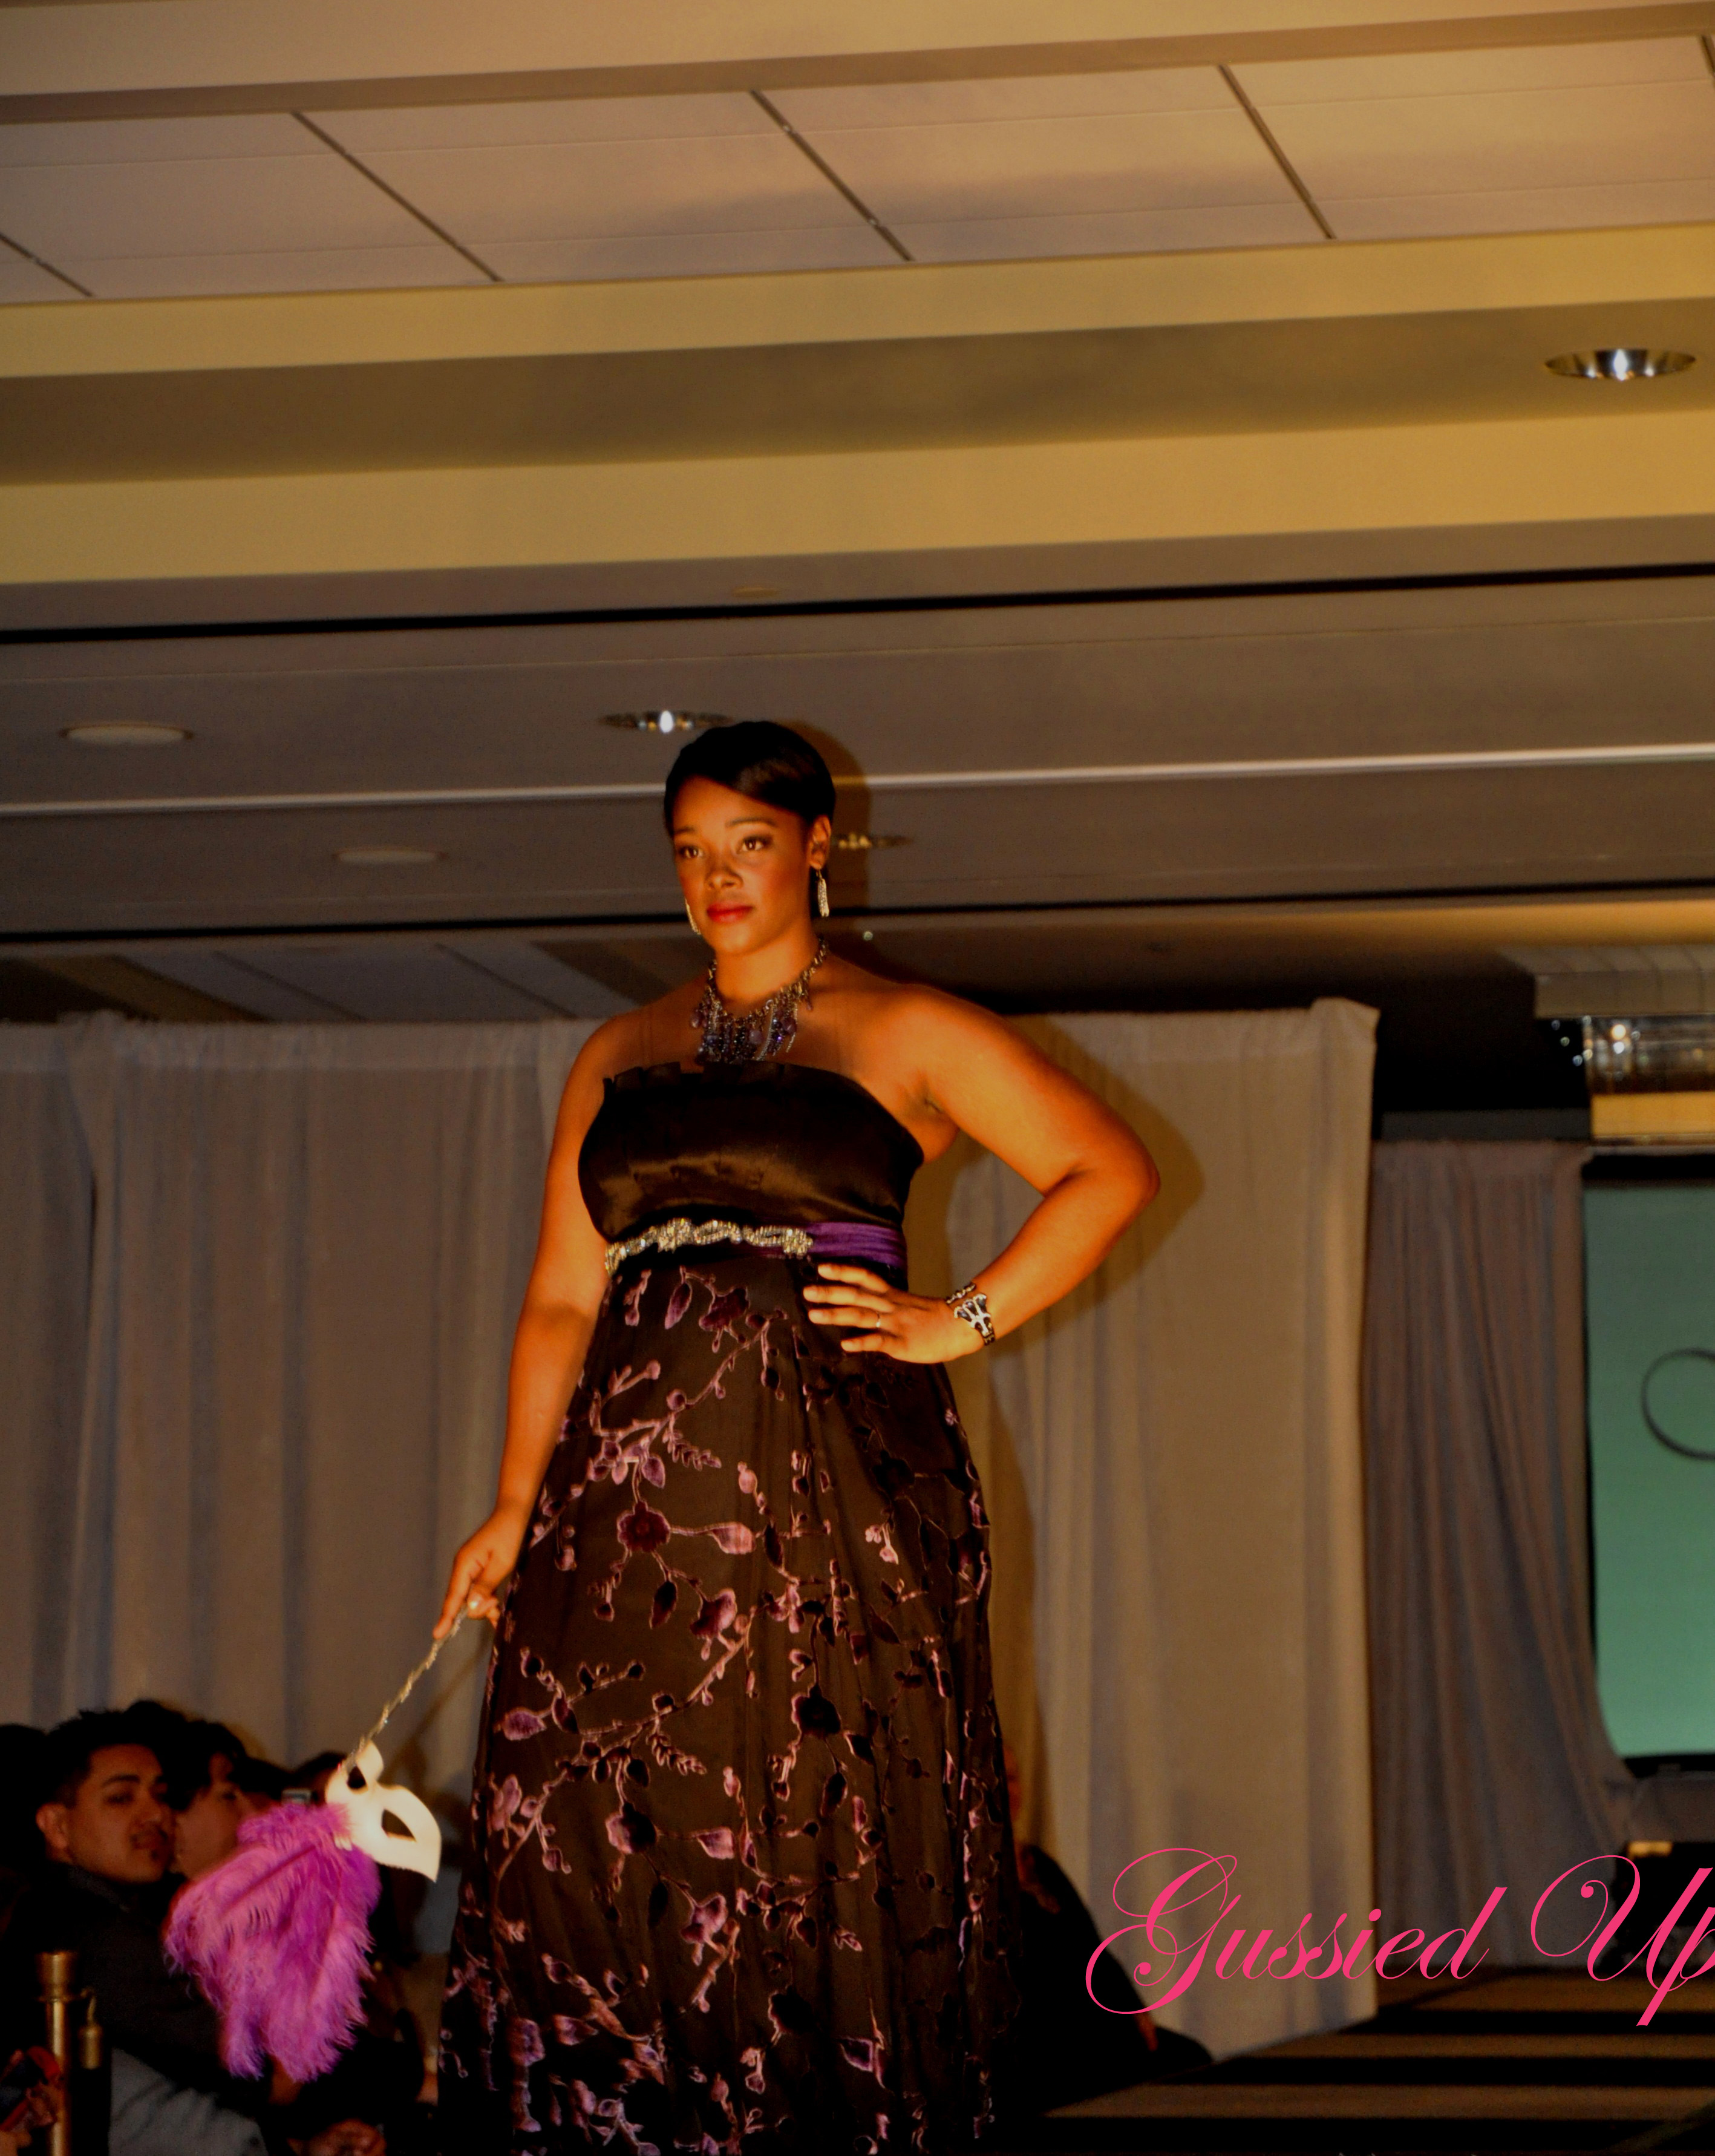 b2a855db0188 Living a Gussied Up Life: Toronto Lifestyle and Plus Size Fashion ...